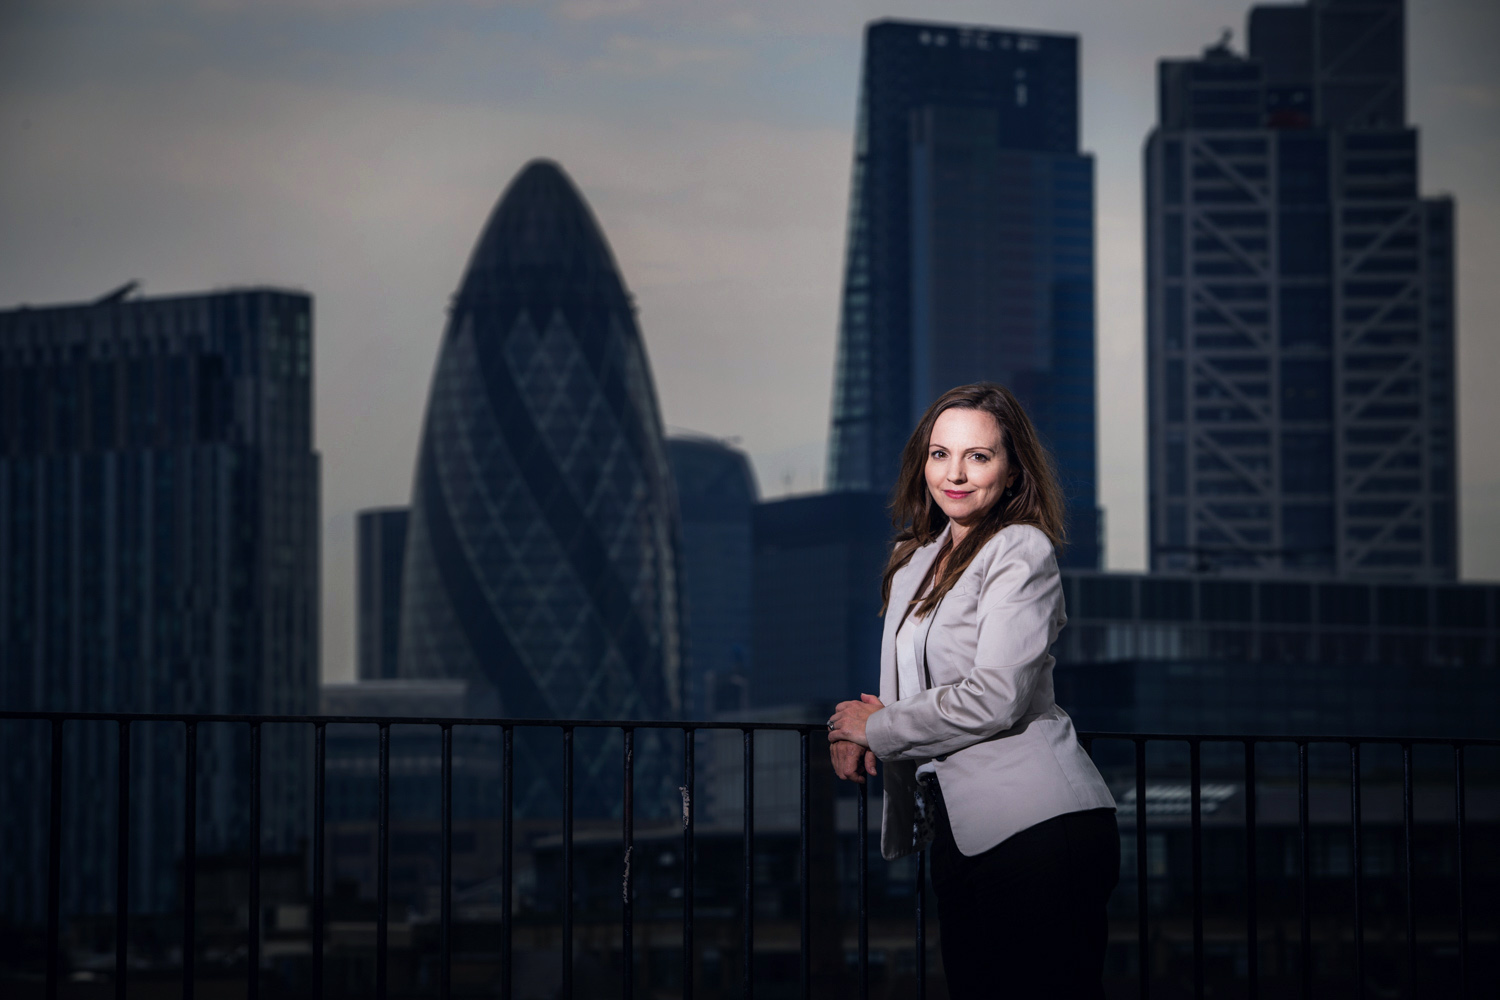 corporate_headshot_photographer_london (14).jpg